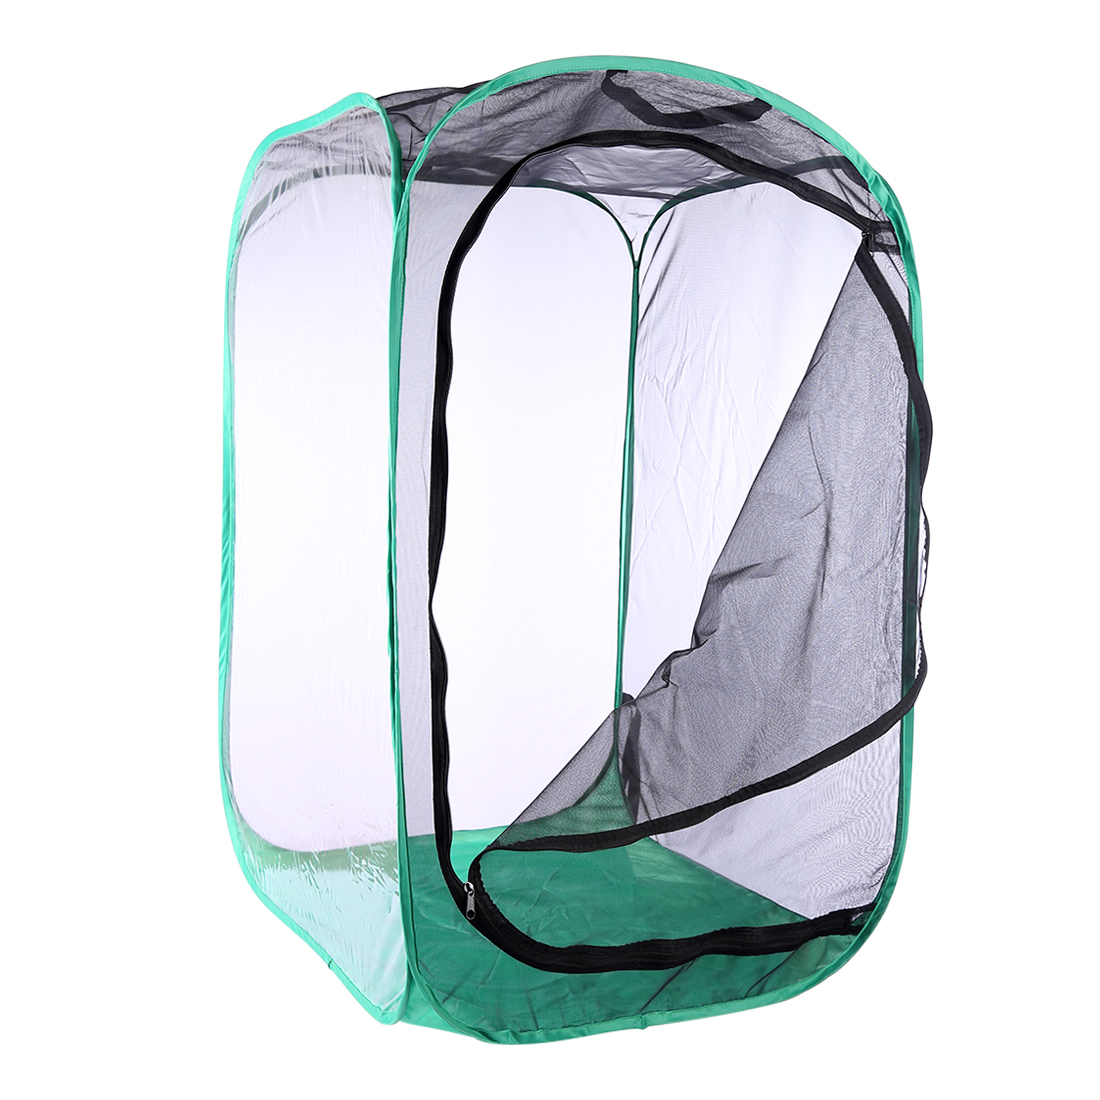 Outdoor Butterfly Insect Habitat Cage Mesh Neture Playing Sport  Learning Educational Science Experiment Terrarium Pop-up - LOutdoor Butterfly Insect Habitat Cage Mesh Neture Playing Sport  Learning Educational Science Experiment Terrarium Pop-up - L